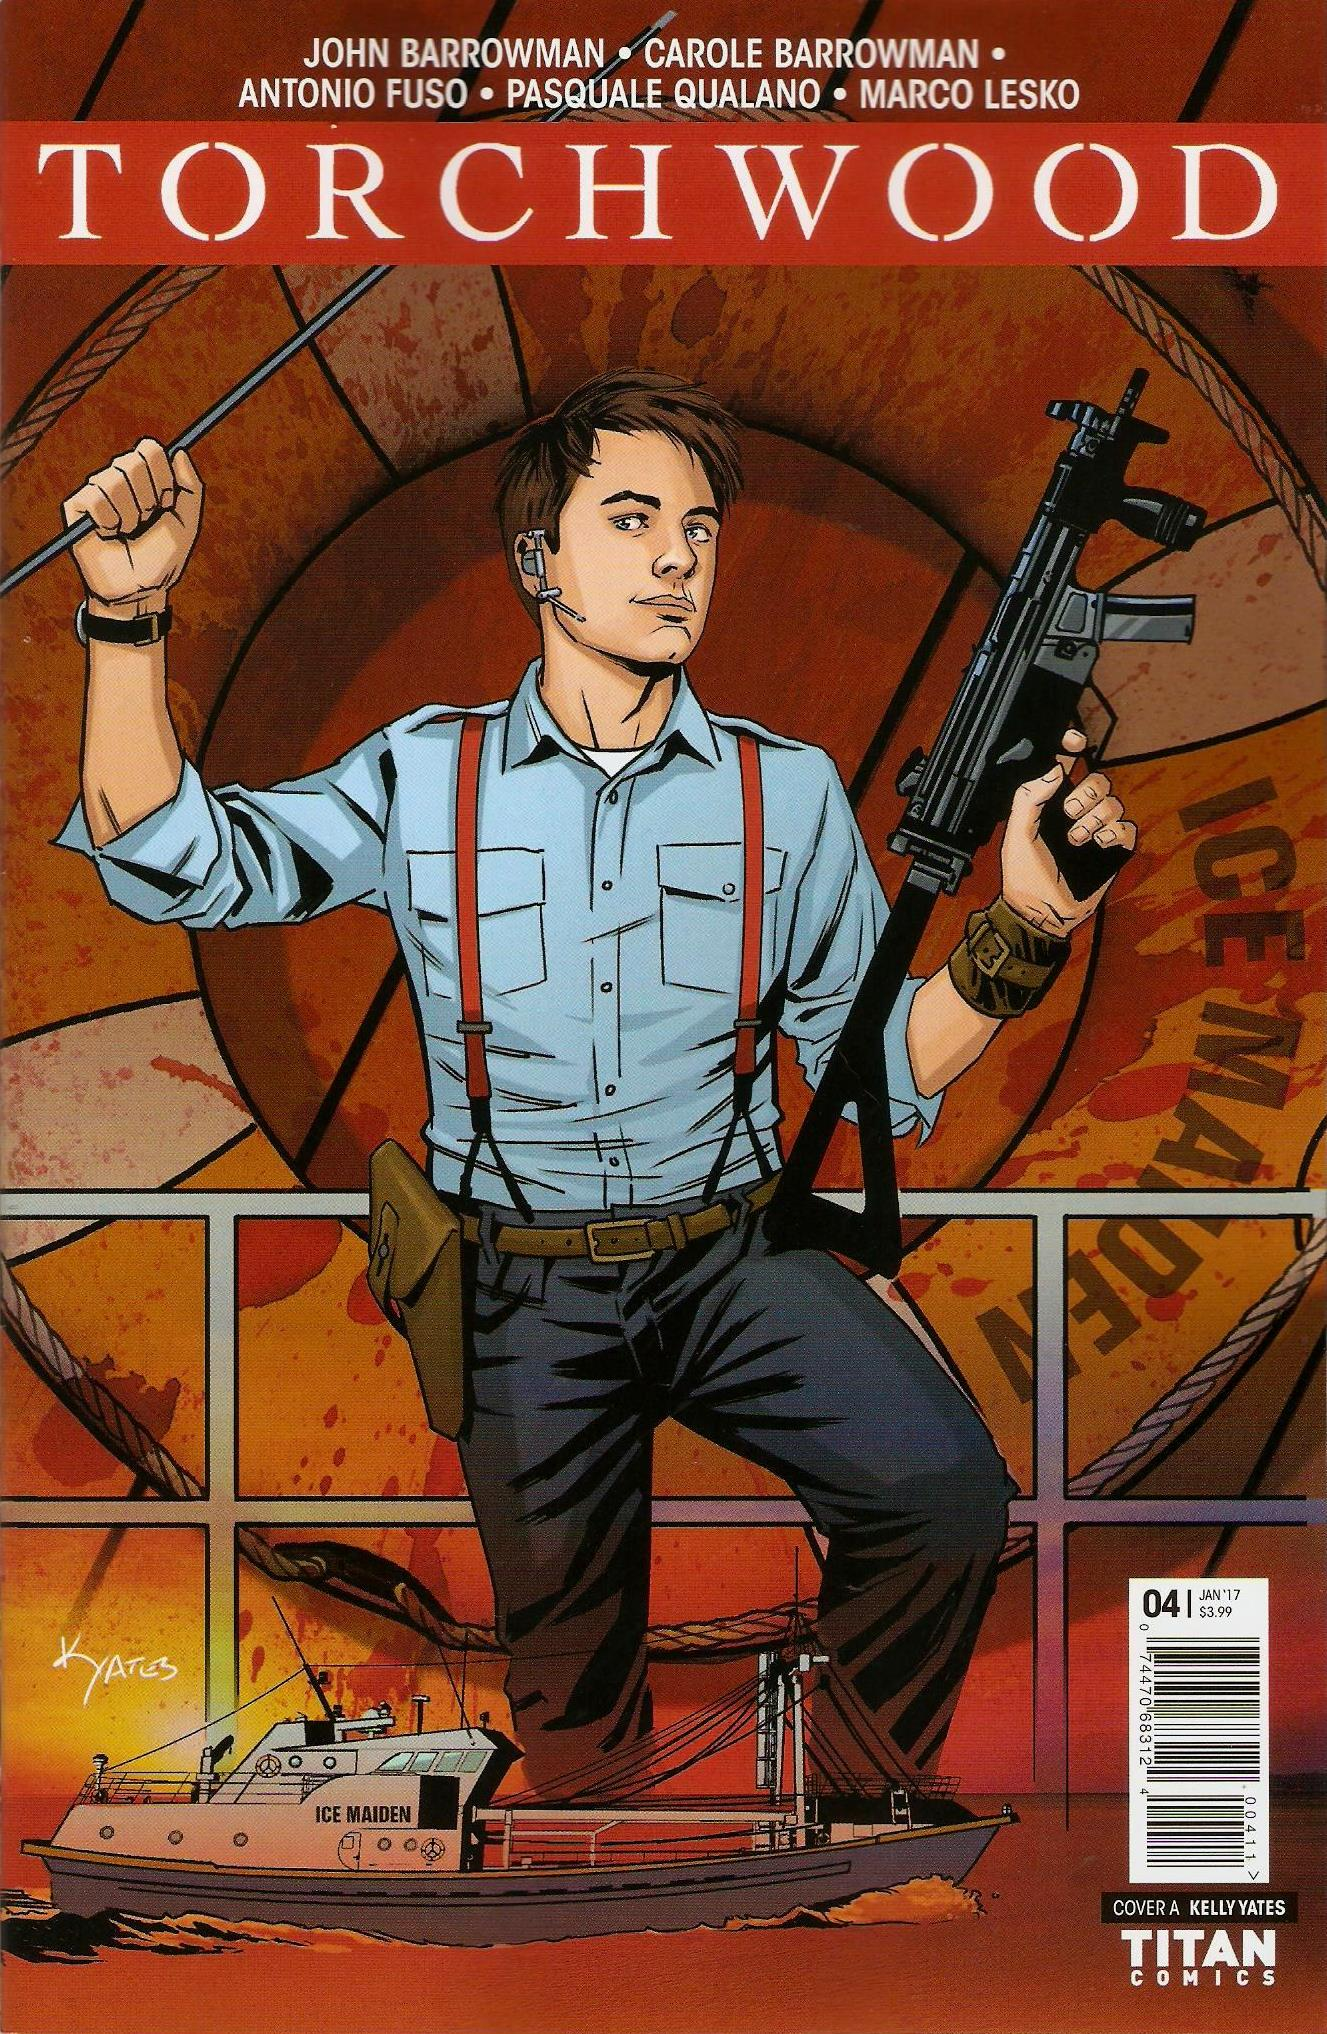 Torchwood issue 4a